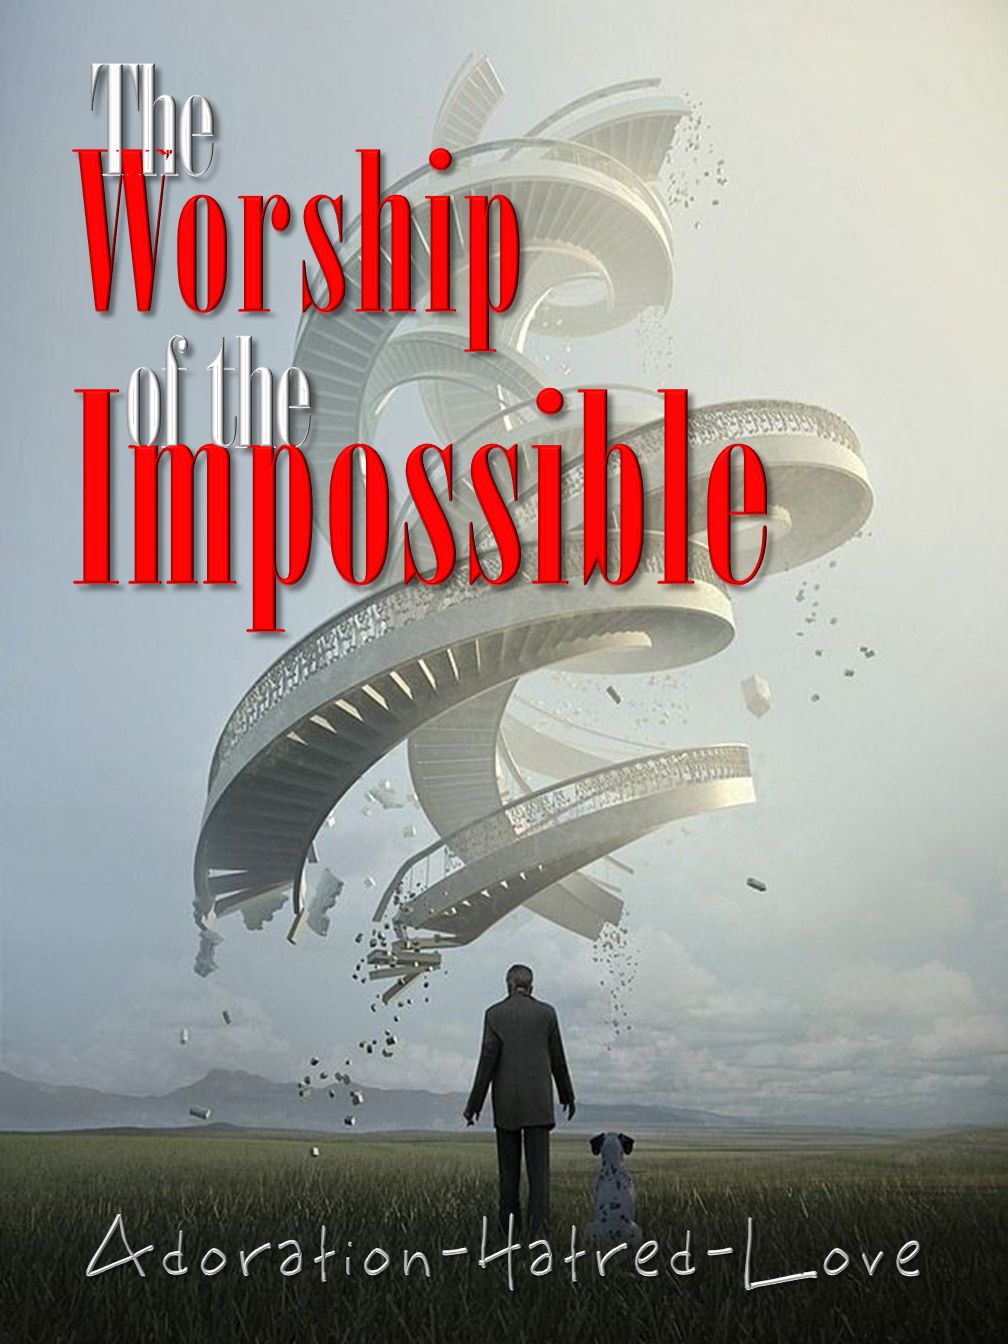 The Worship of the Impossible